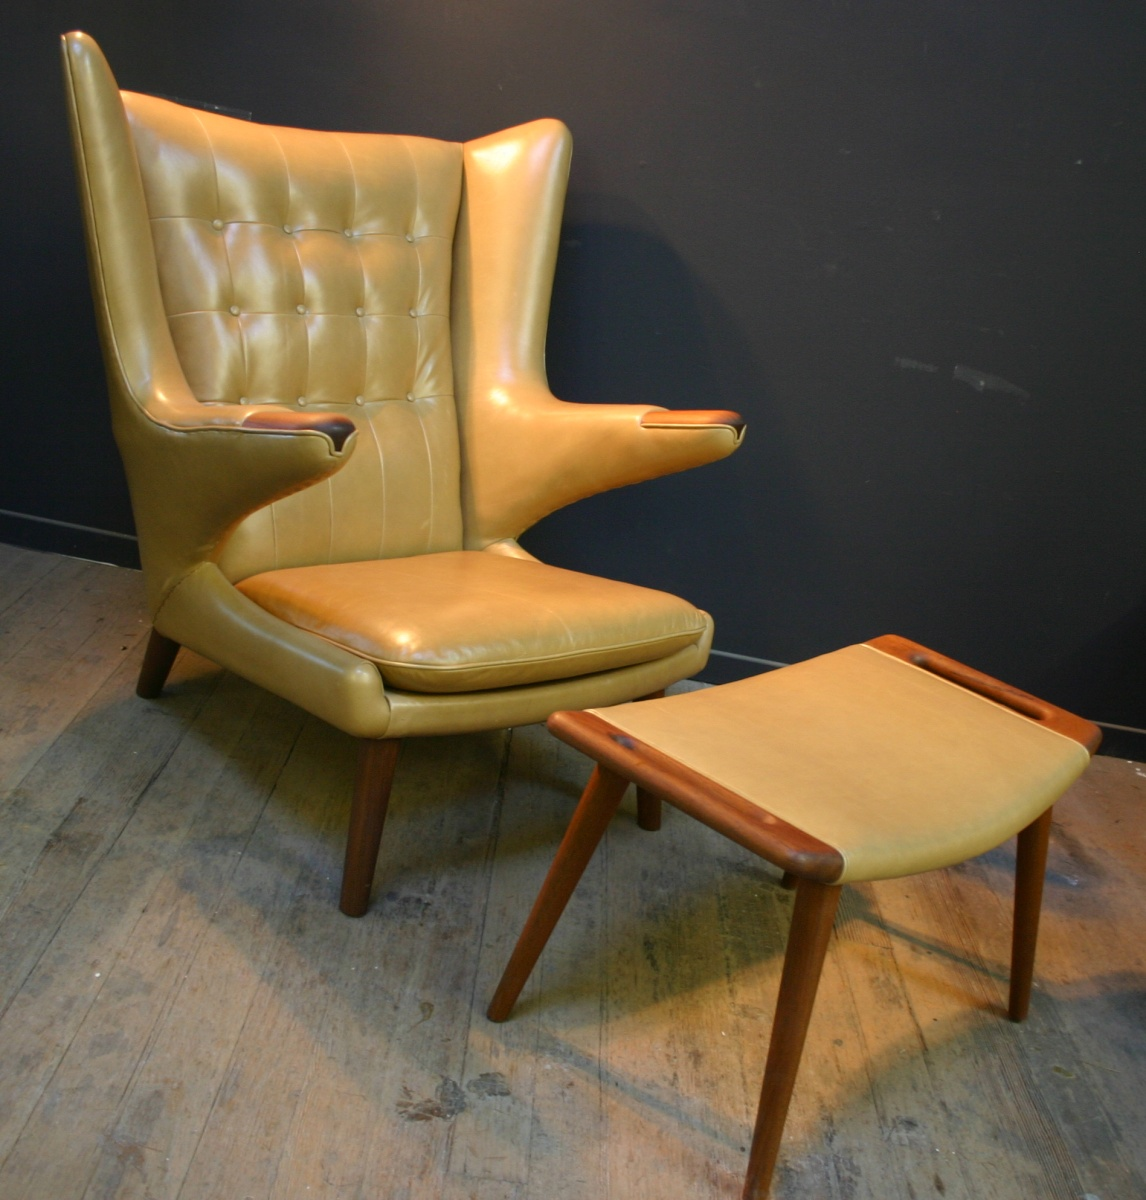 hans wegner papa bear chair restoration vintage furniture guru